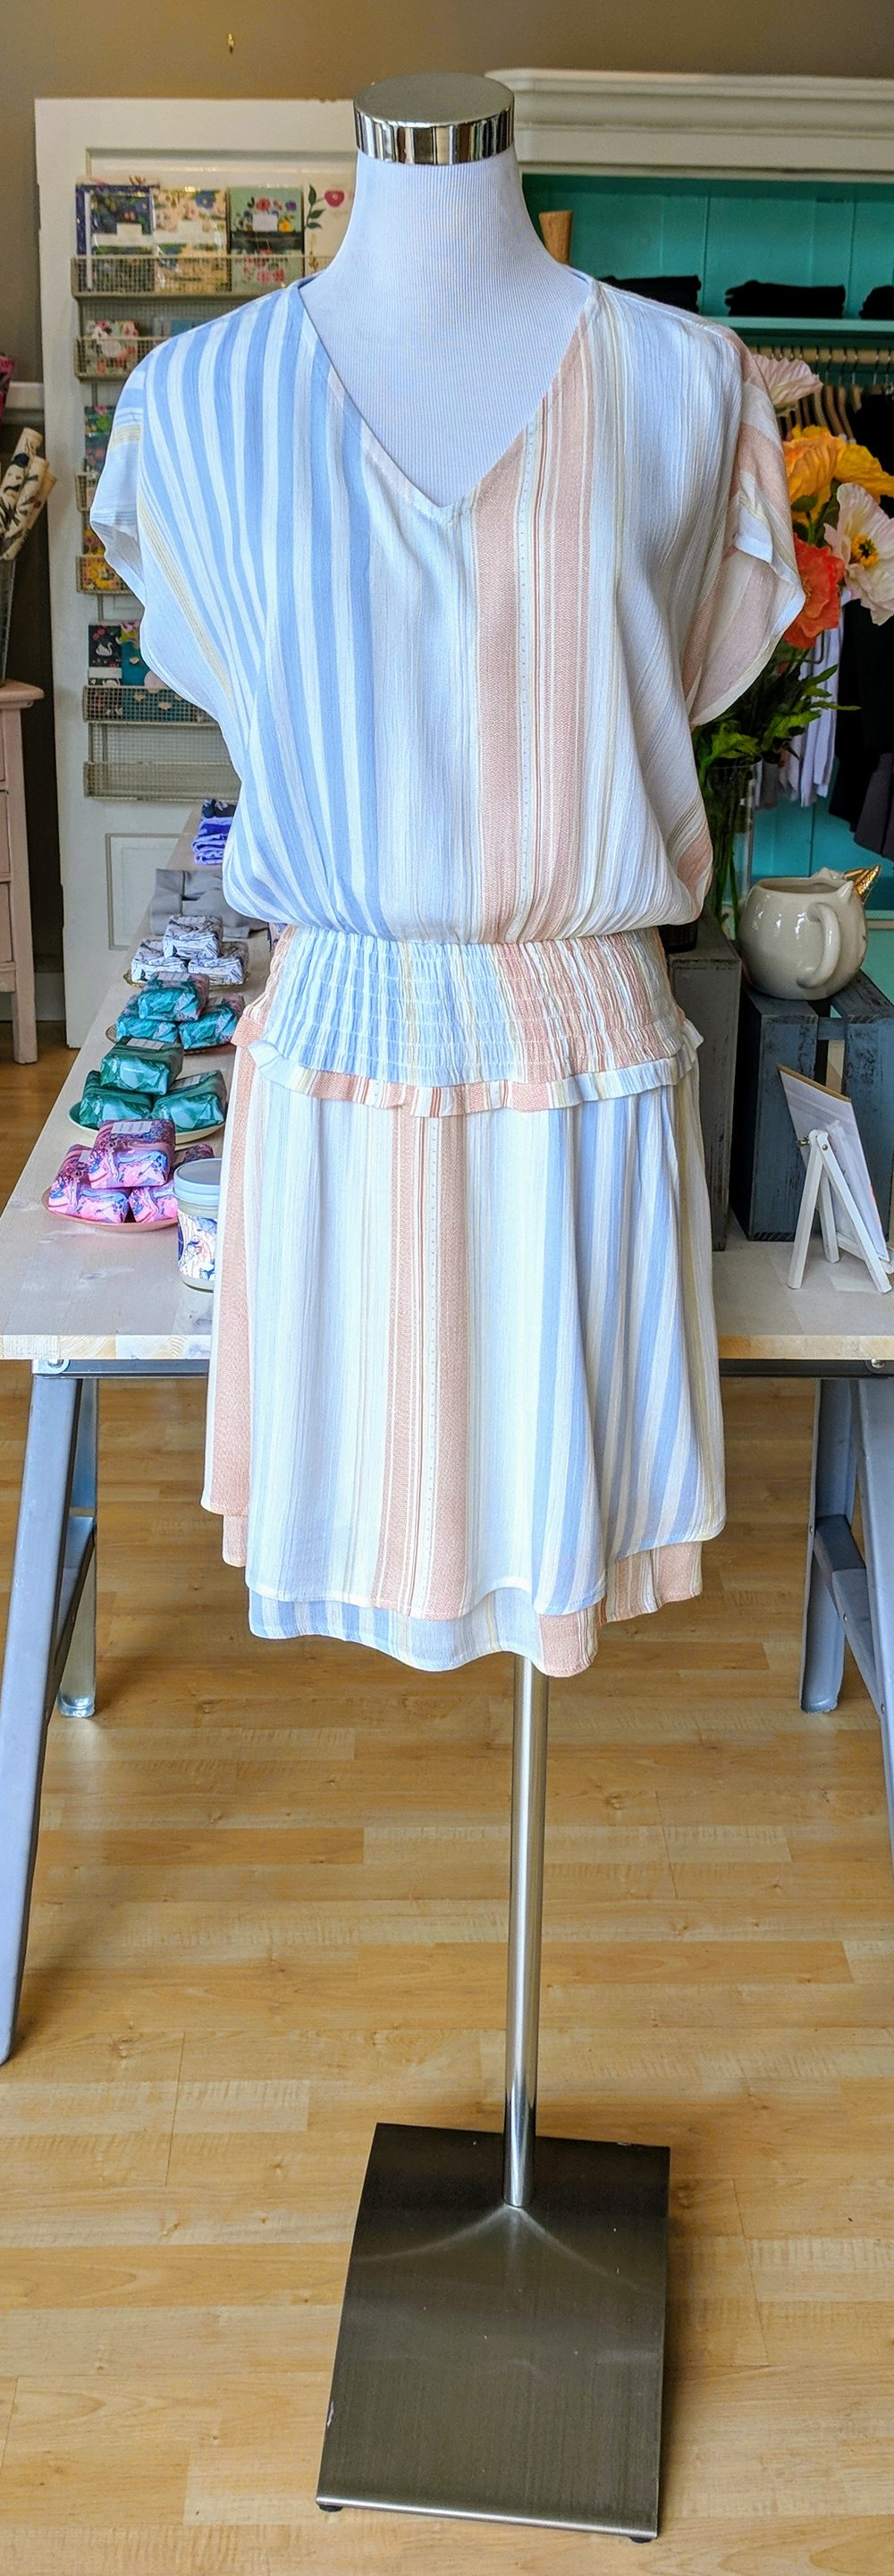 Light blue striped mini dress with a smocked waist.